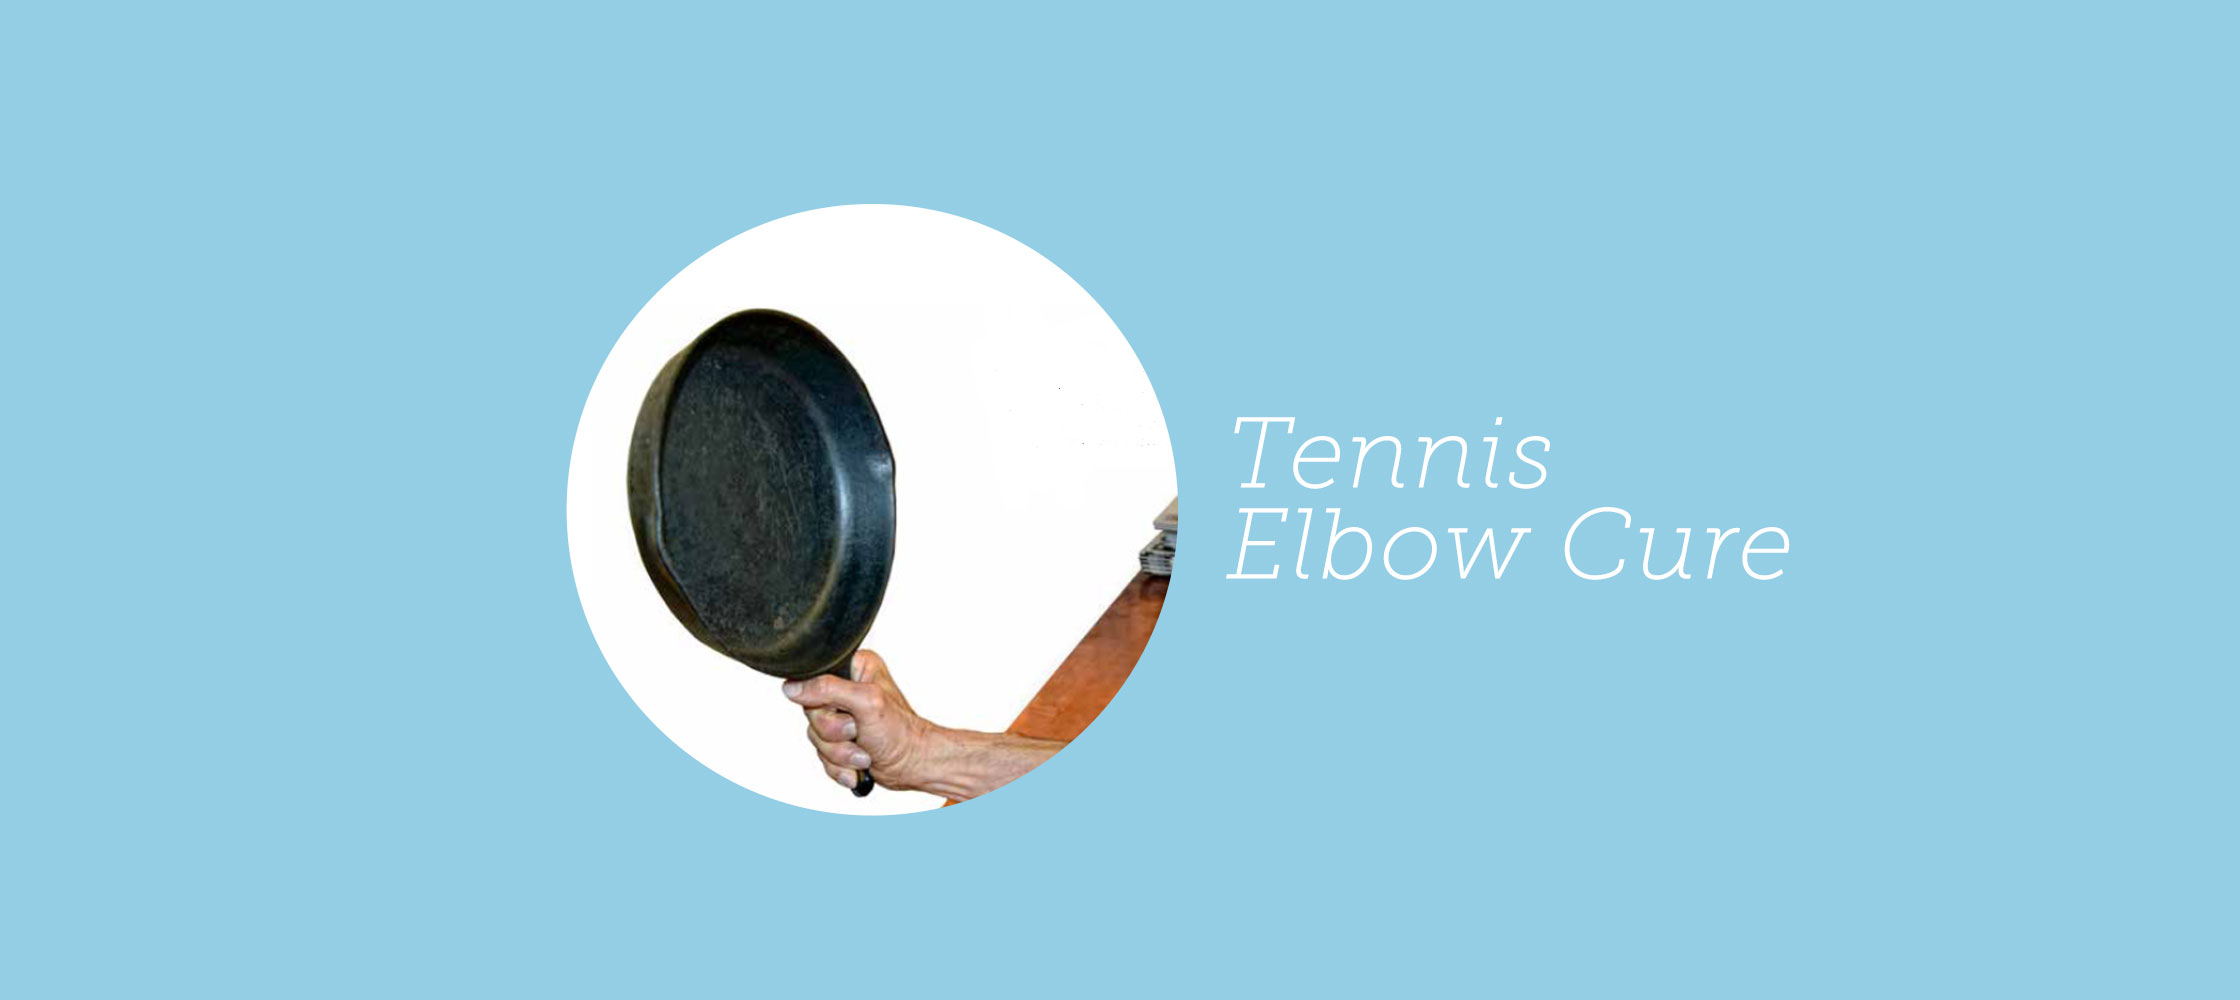 201-tennis-elbow-cure